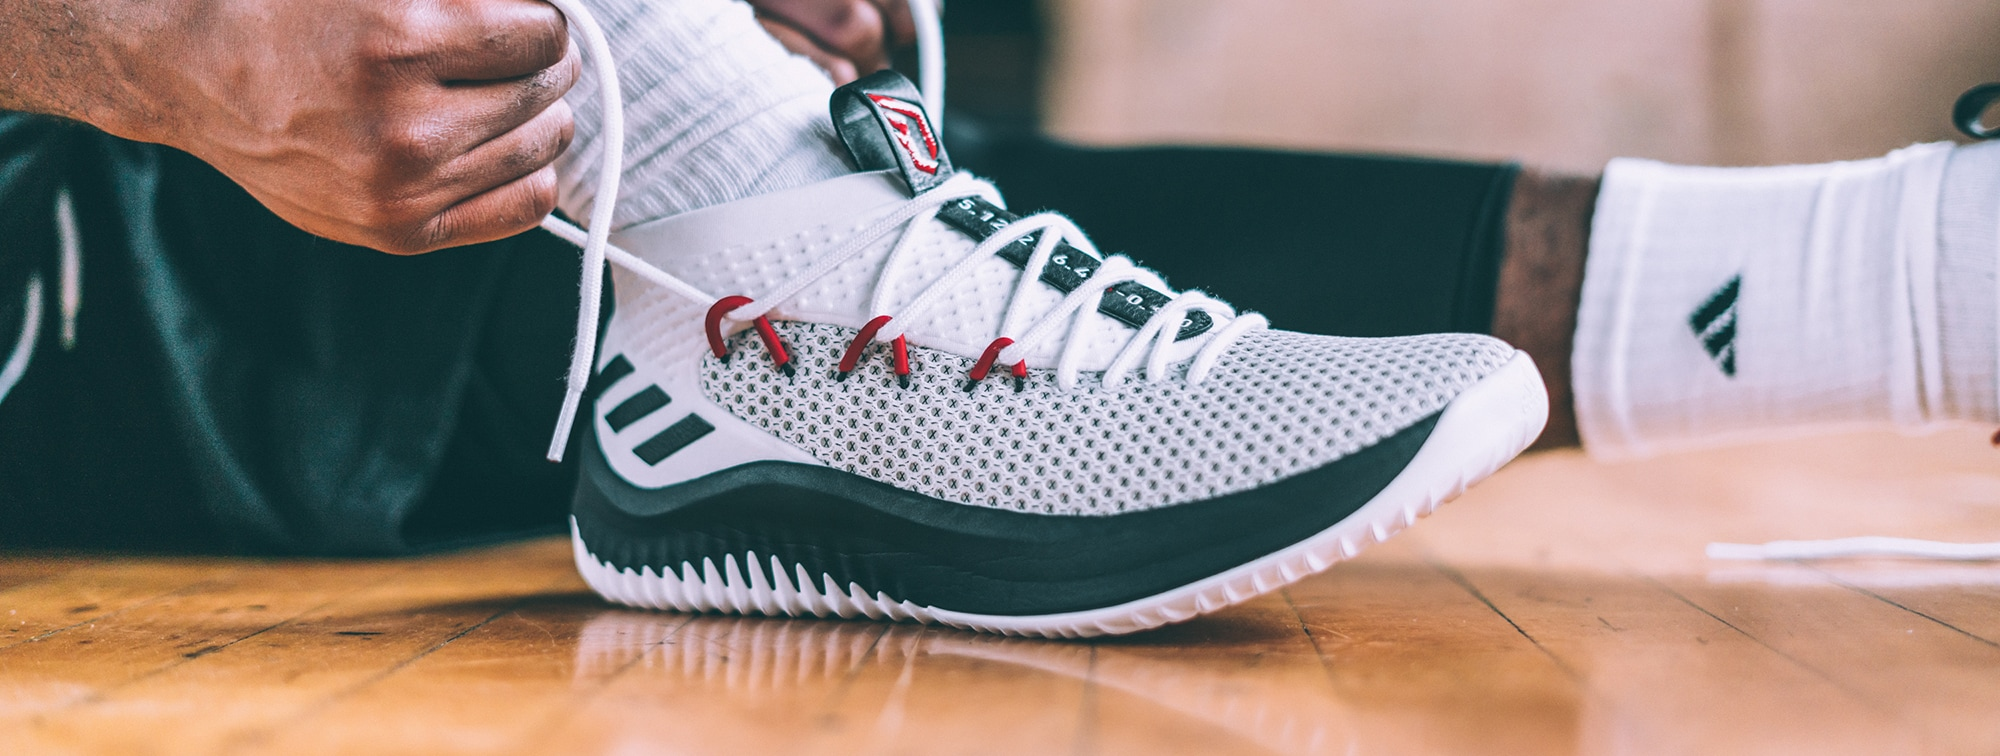 sale retailer f7534 9243f Adidas Releases Damian Lillards Fourth Signature Sneaker, The Dame 4   Portland Trail Blazers